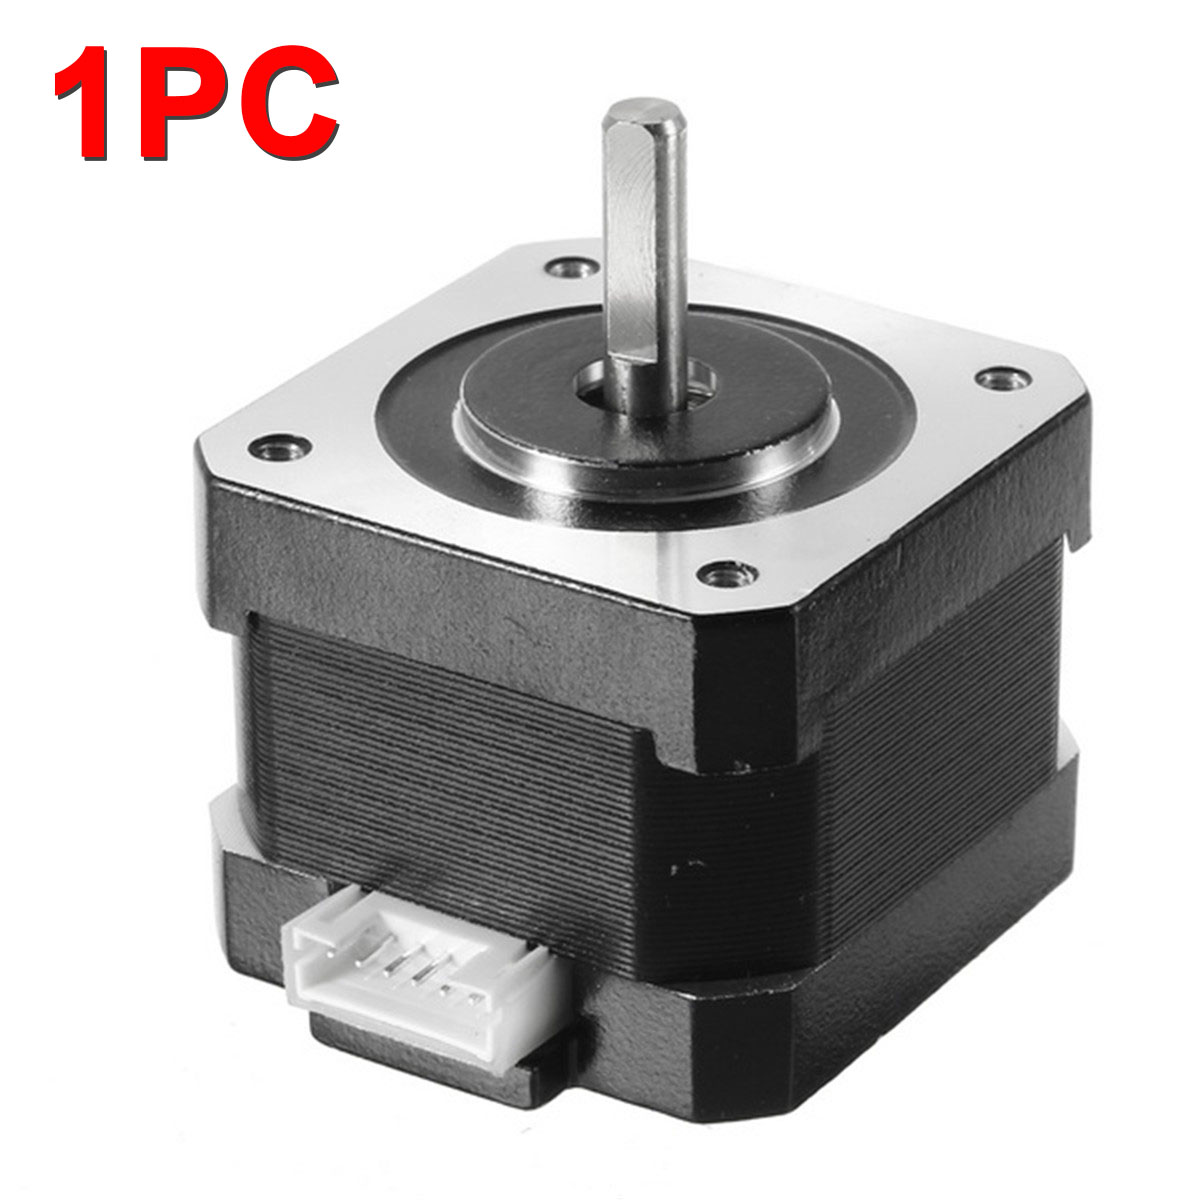 Hybrid Stepper Motor 2 Phase 42HS34-1304A  Motors For Laser Engraver Machine CNC RouterHybrid Stepper Motor 2 Phase 42HS34-1304A  Motors For Laser Engraver Machine CNC Router